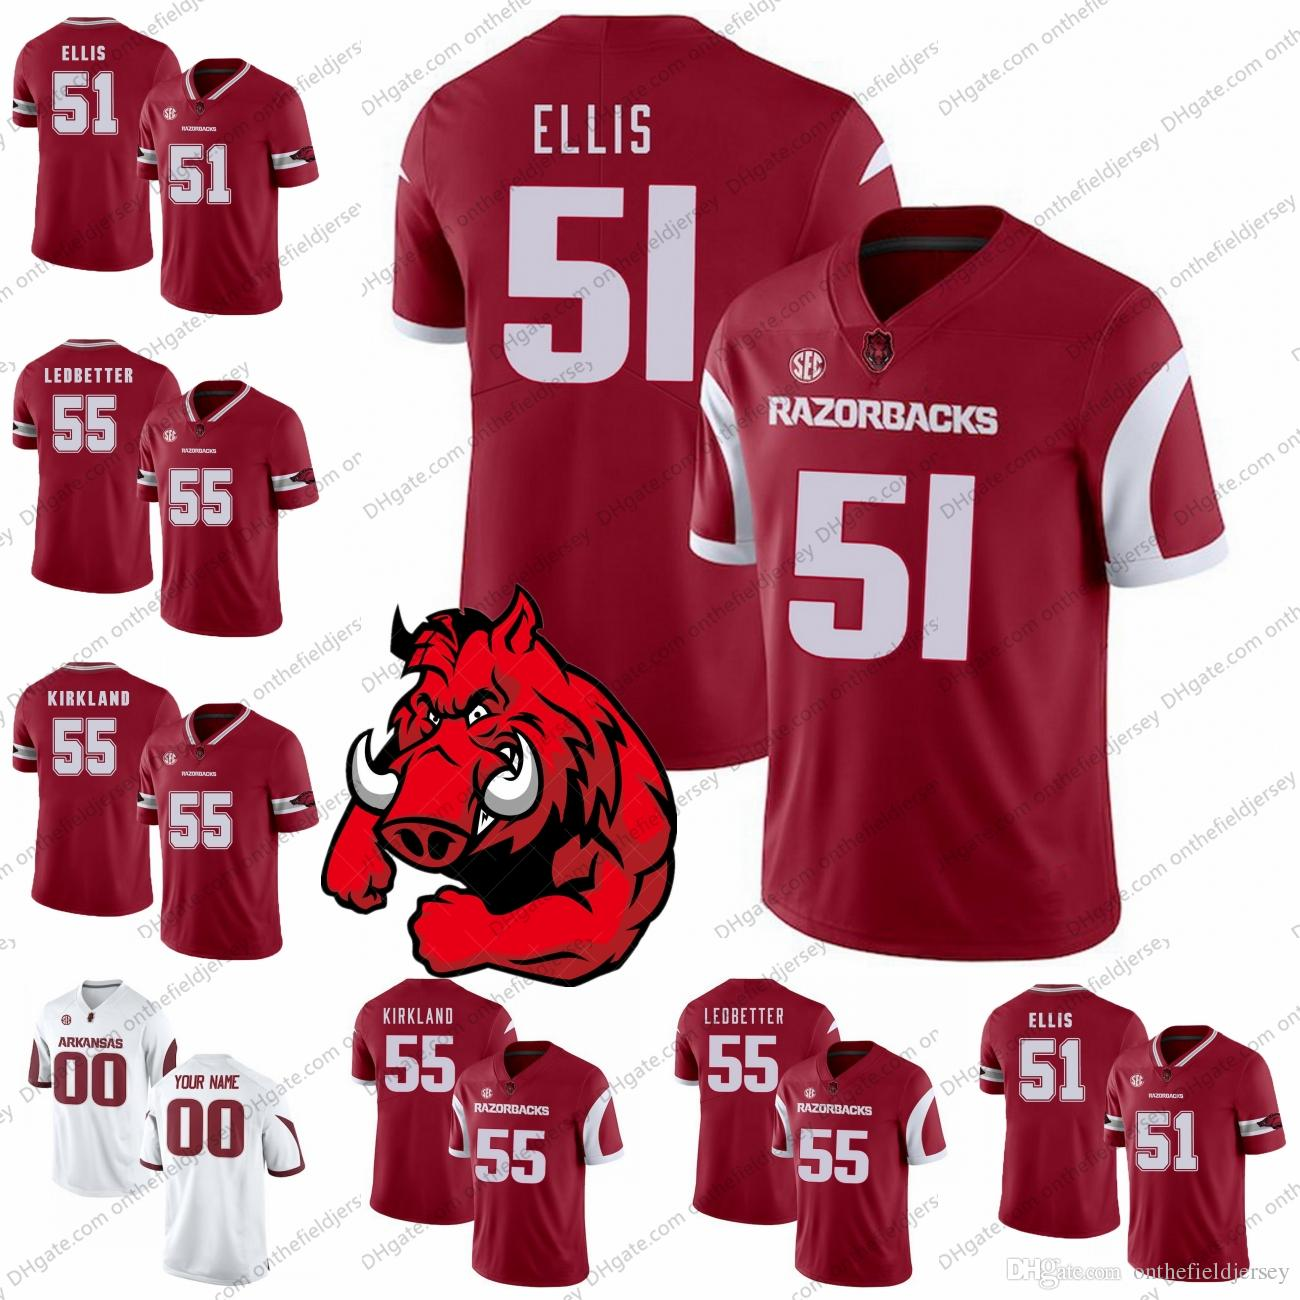 wholesale dealer adc36 d8c8c Arkansas Razorbacks 2018 NEW STYLE NCAA Football Jerseys #51 Brooks Ellis  55 Denver Kirkland 55 Jeremiah Ledbetter S-3XL